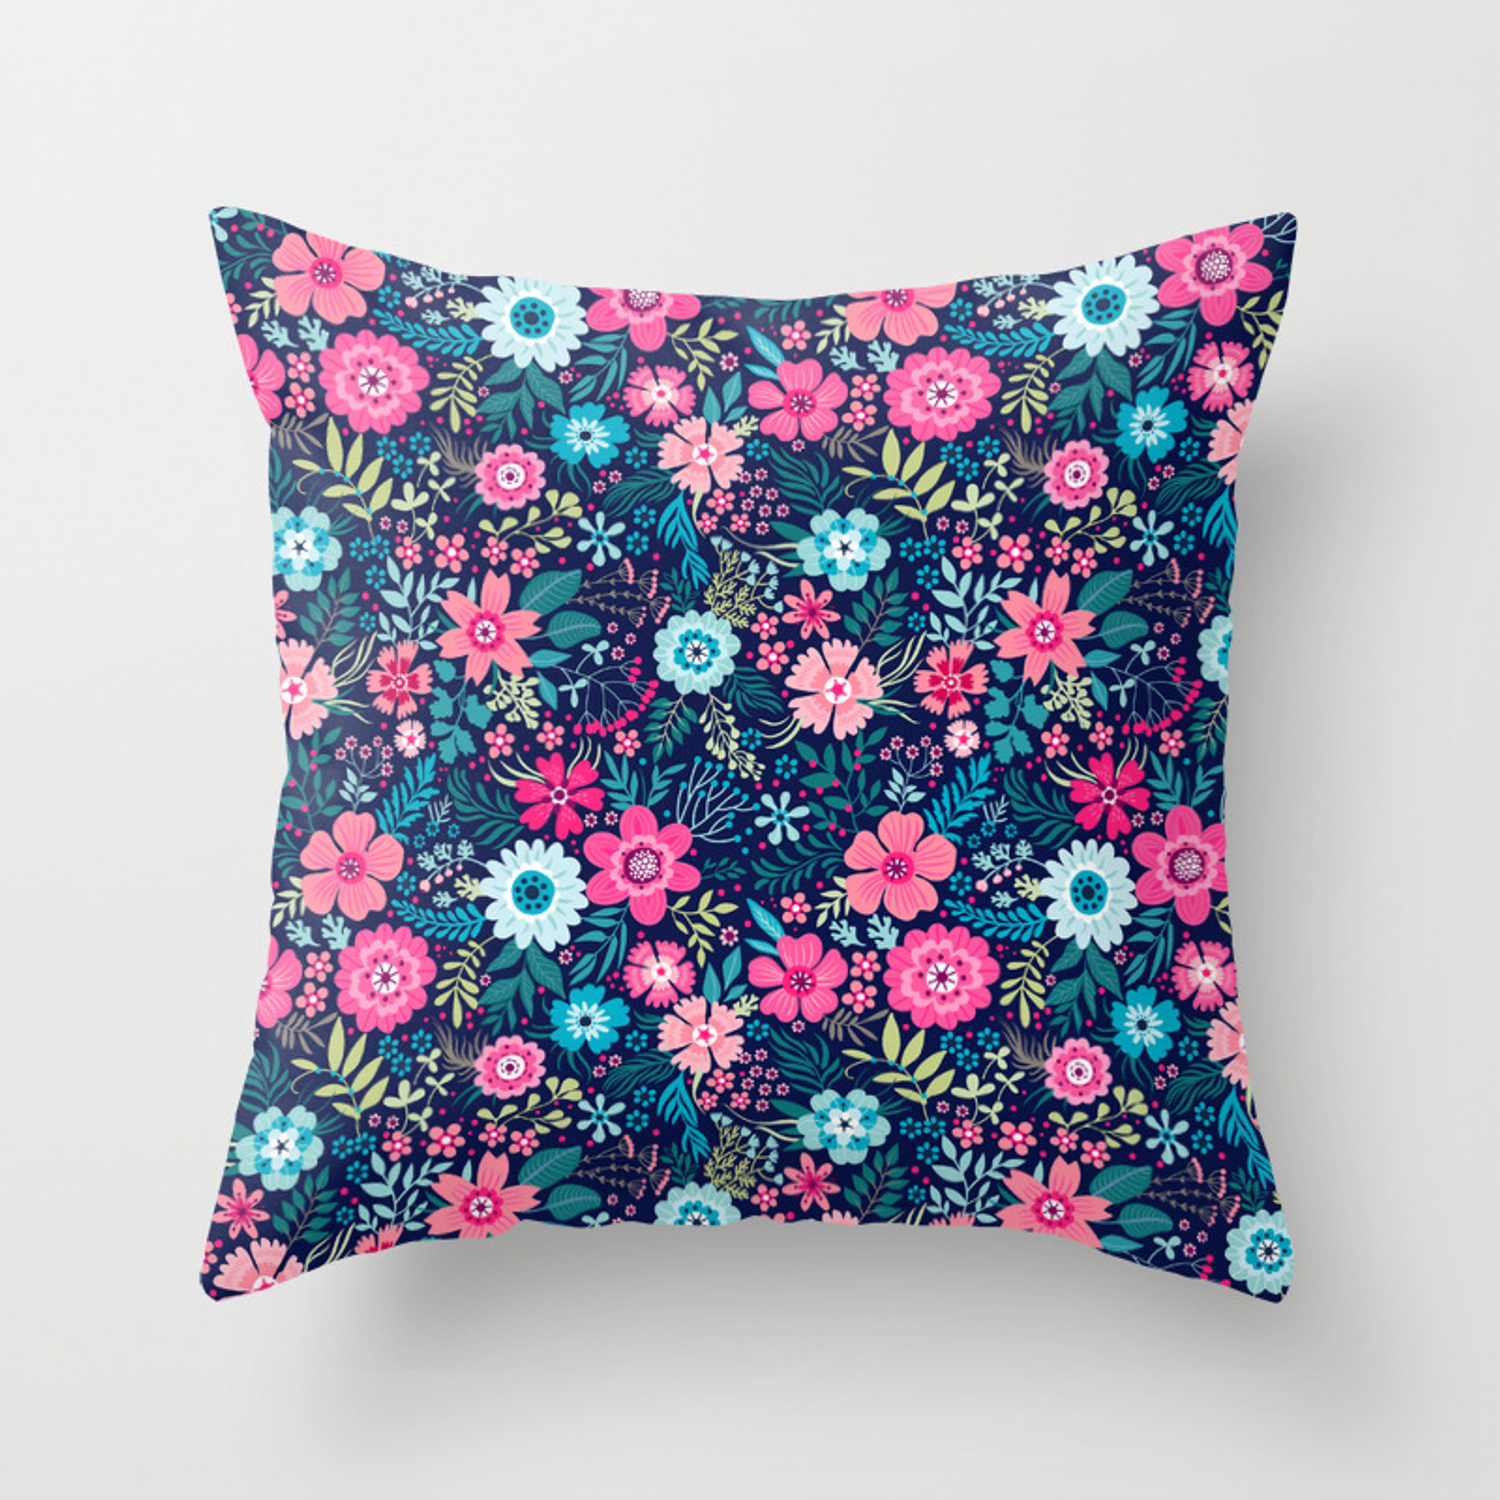 Amazing Floral Pattern With Bright Colorful Flowerson A Dark Blue Background Throw Pillow By Ann And Pen Society6